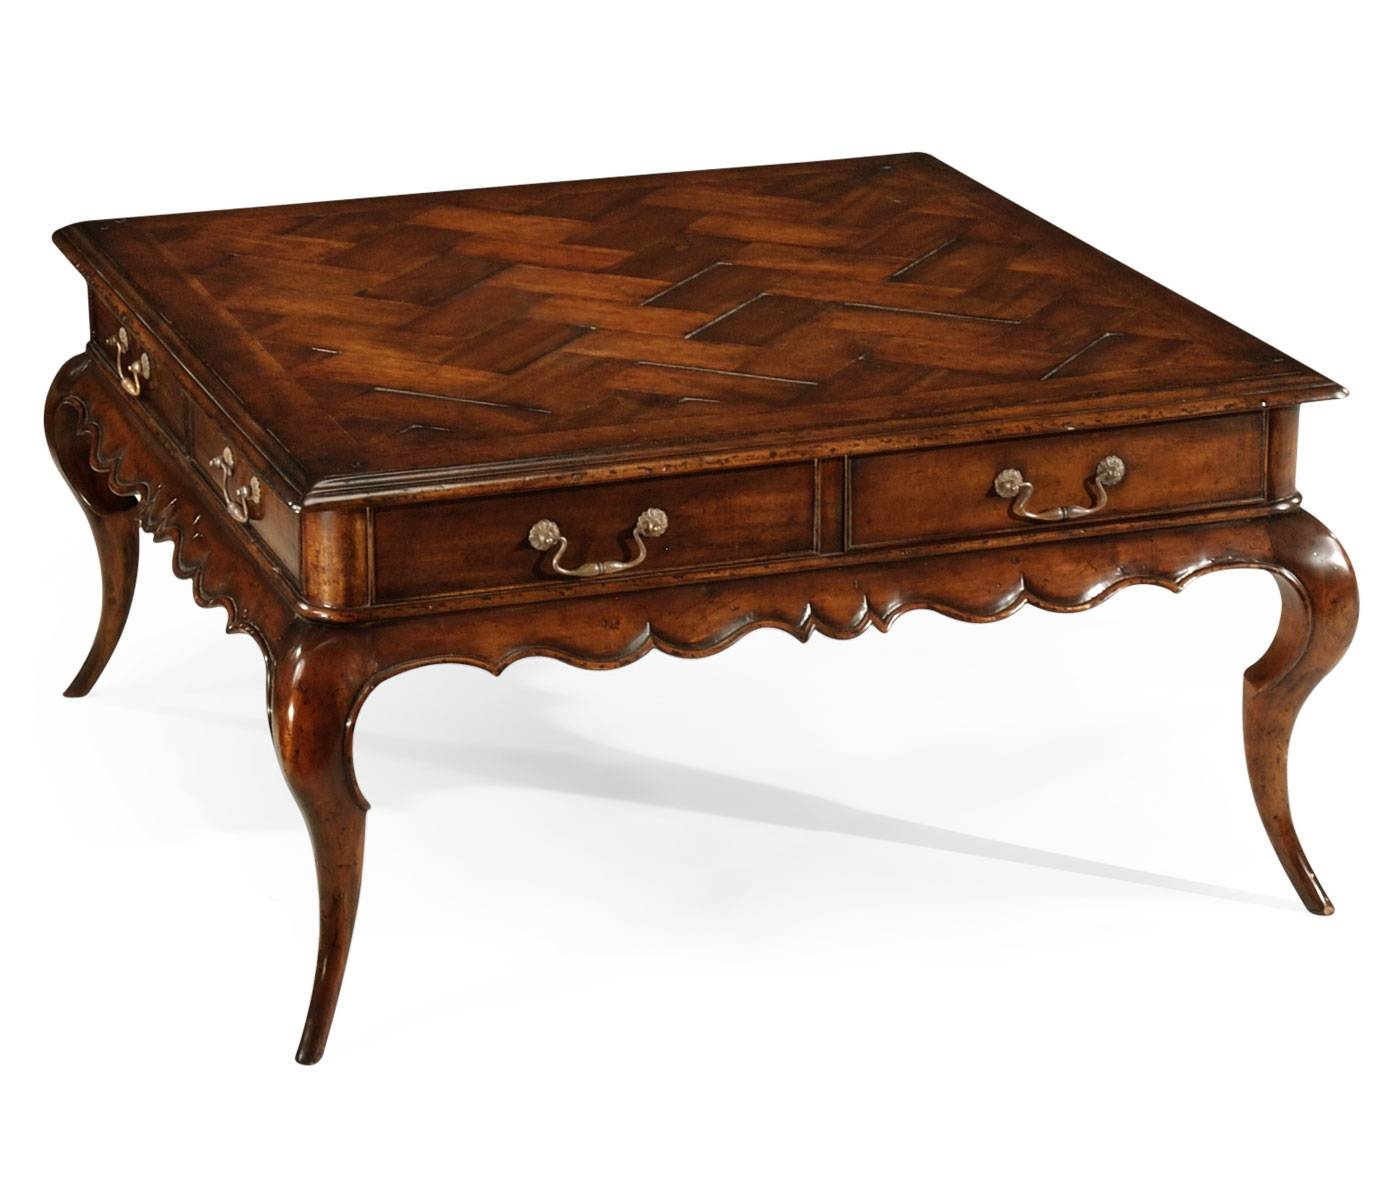 French Coffee Table Ivory Gold Style Throughout Country French Coffee Tables (View 16 of 30)